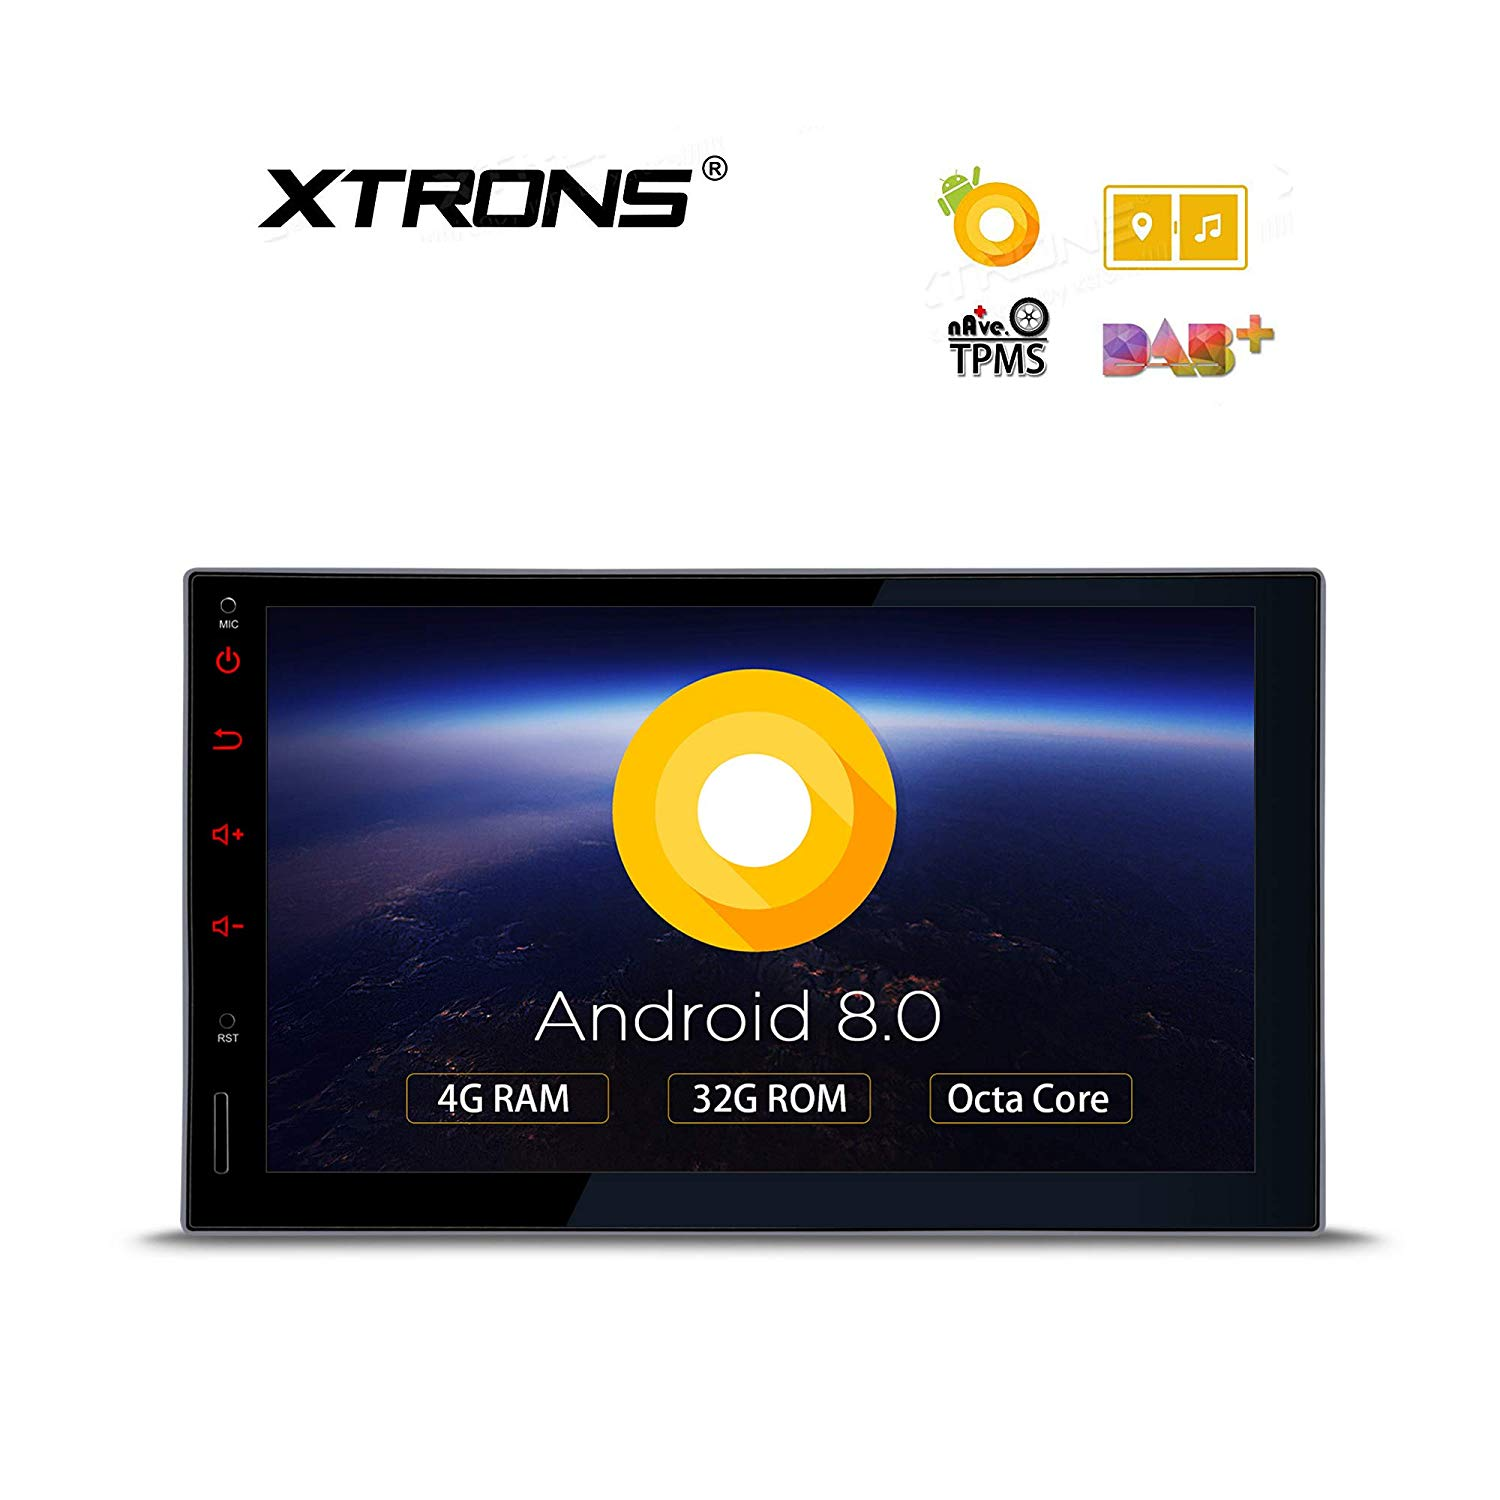 XTRONS 7 Inch Android 8.0 Octa